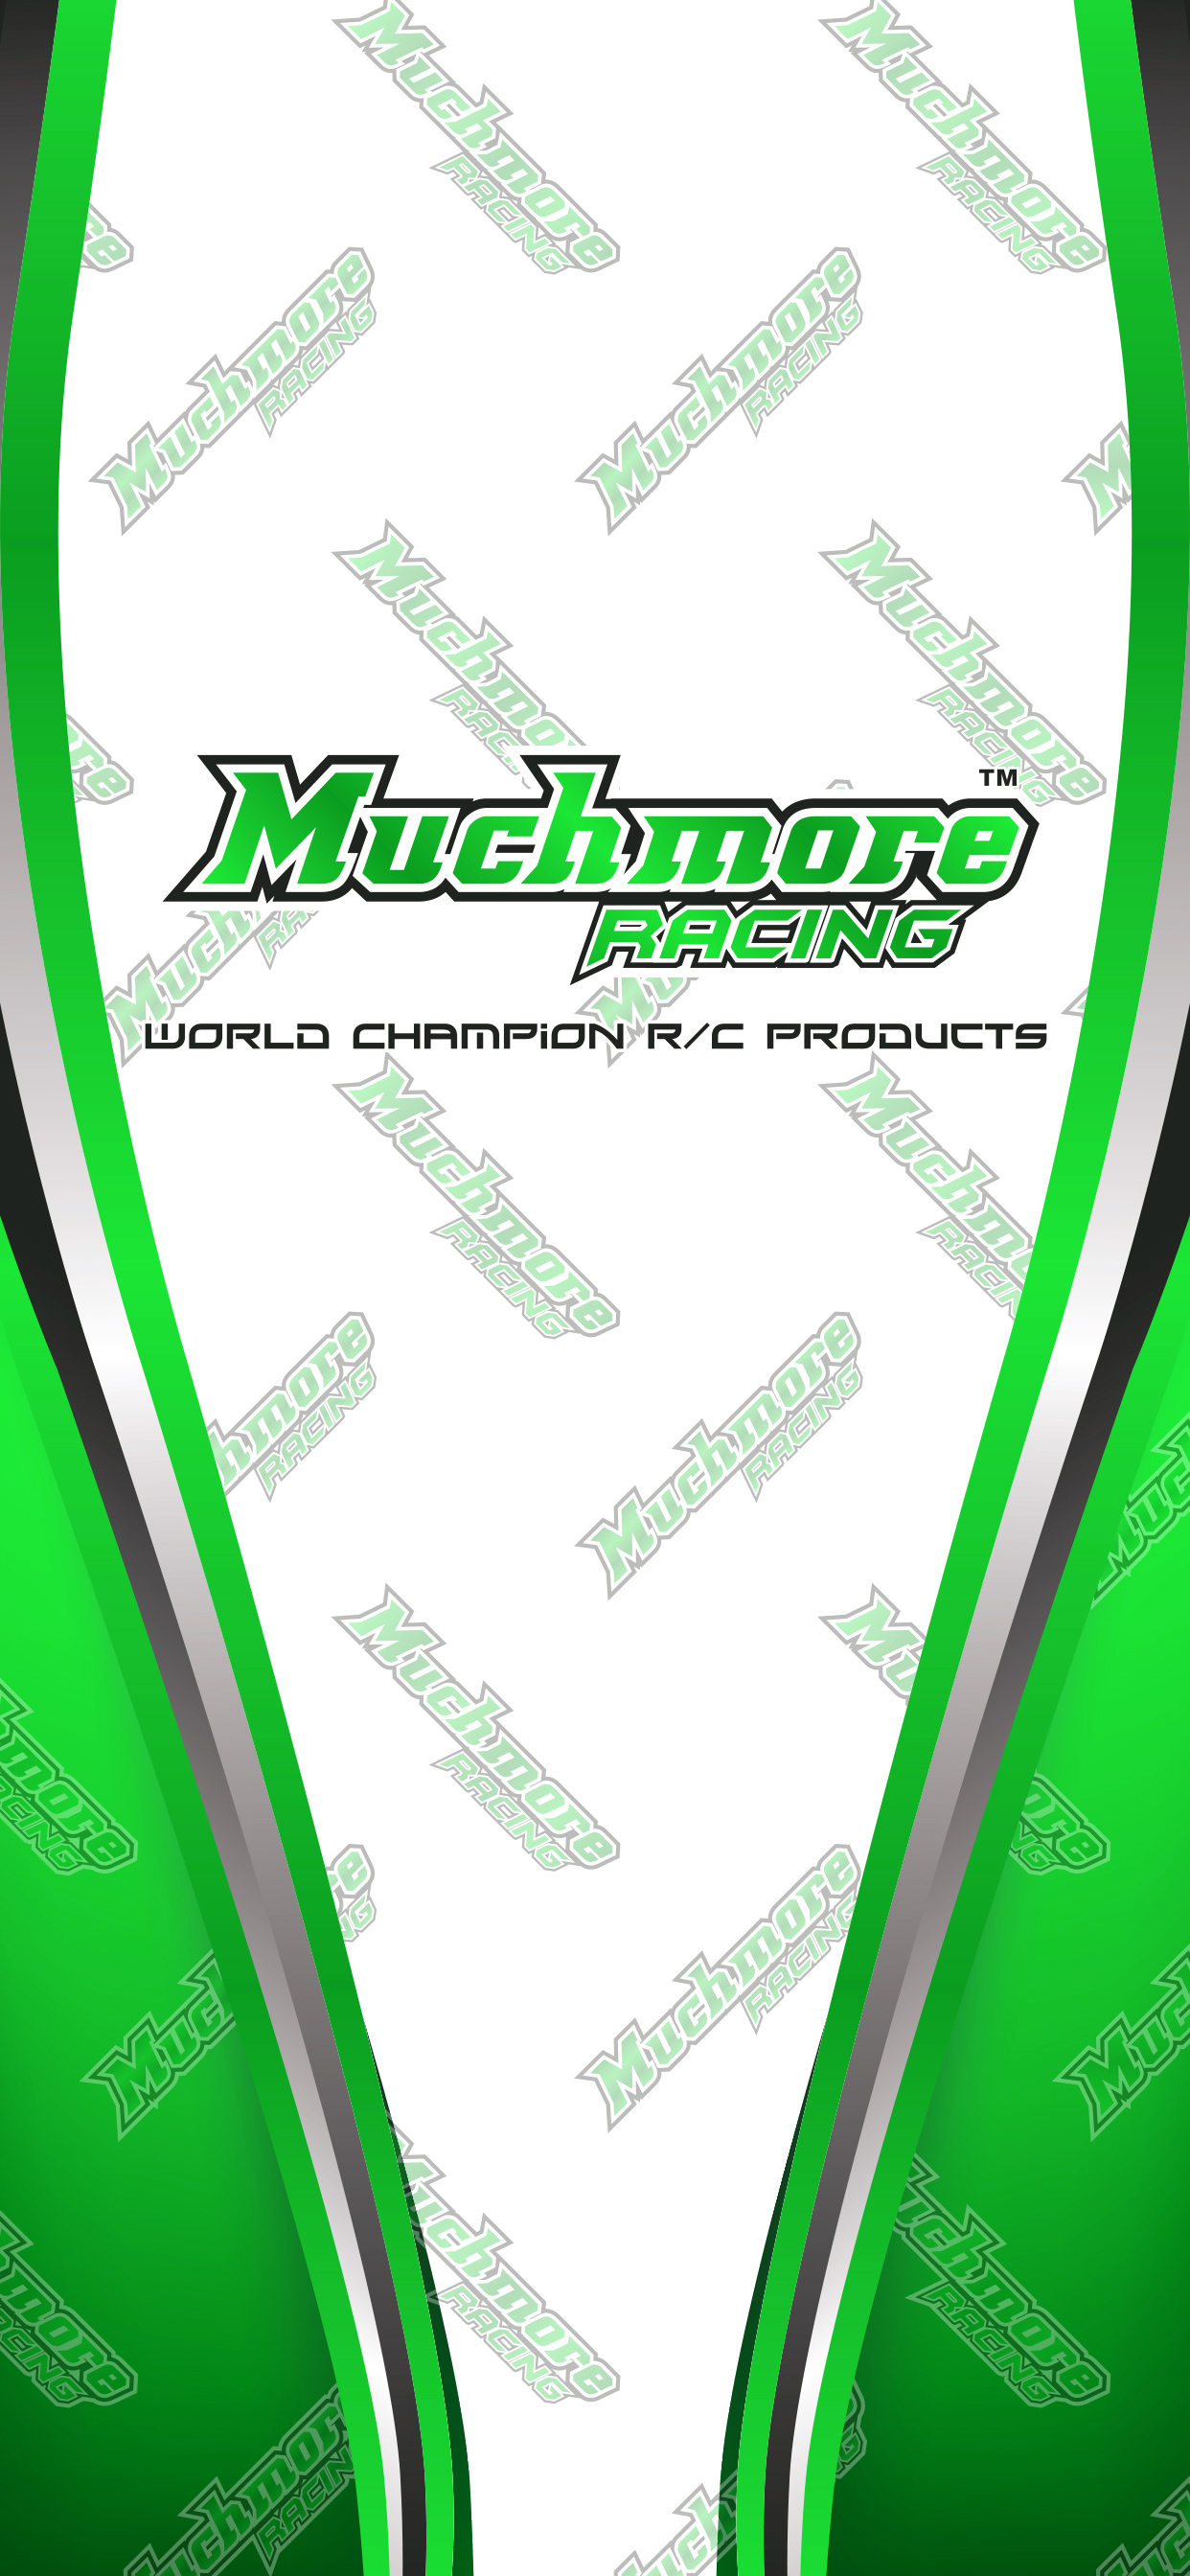 MuchmoreRacing_Wallpaper_Green_Ver_Apple iPhone 195by9 ratio.JPG